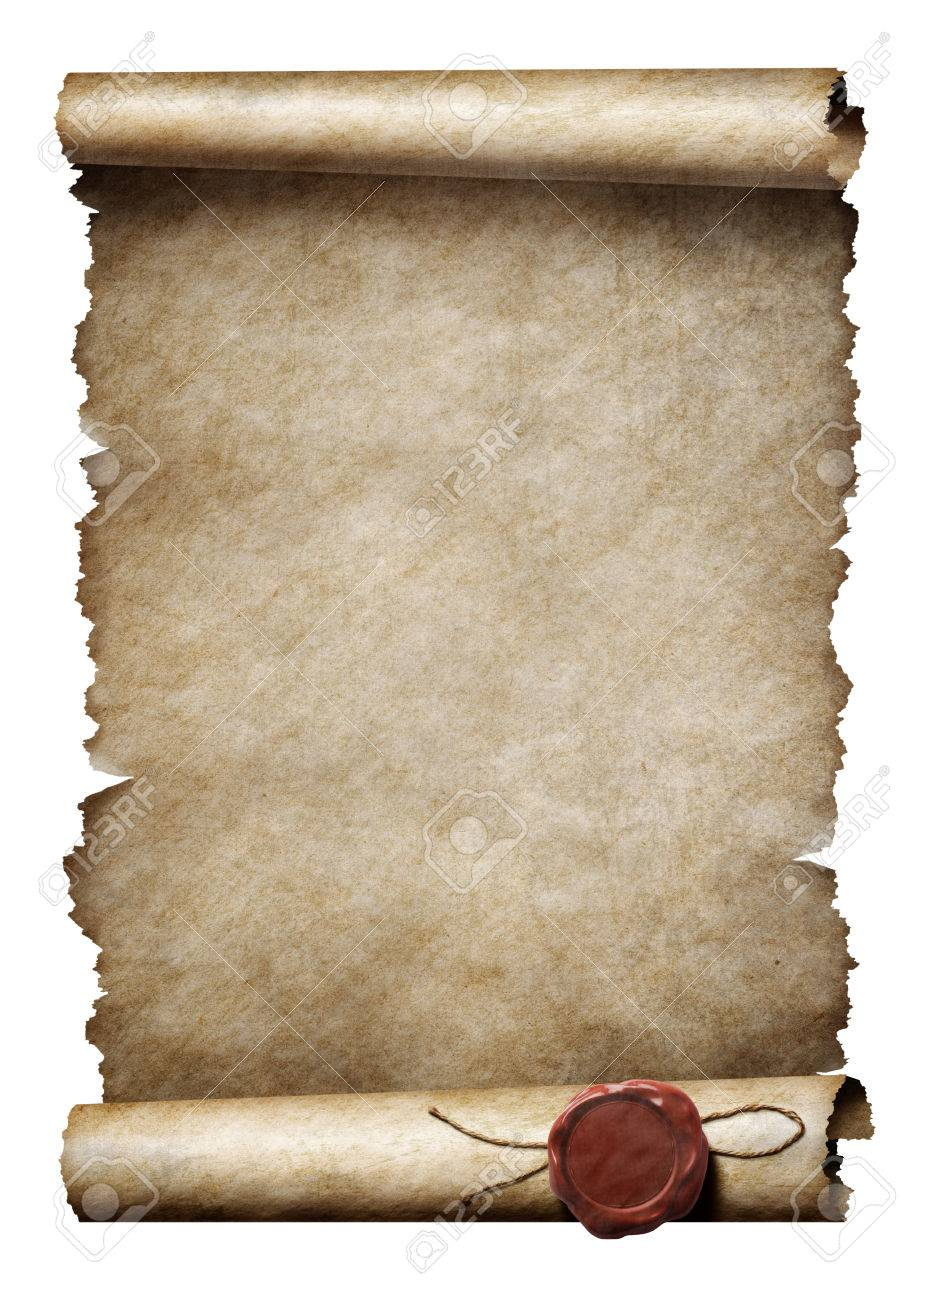 old parchment scroll with wax seal stock photo picture and royalty